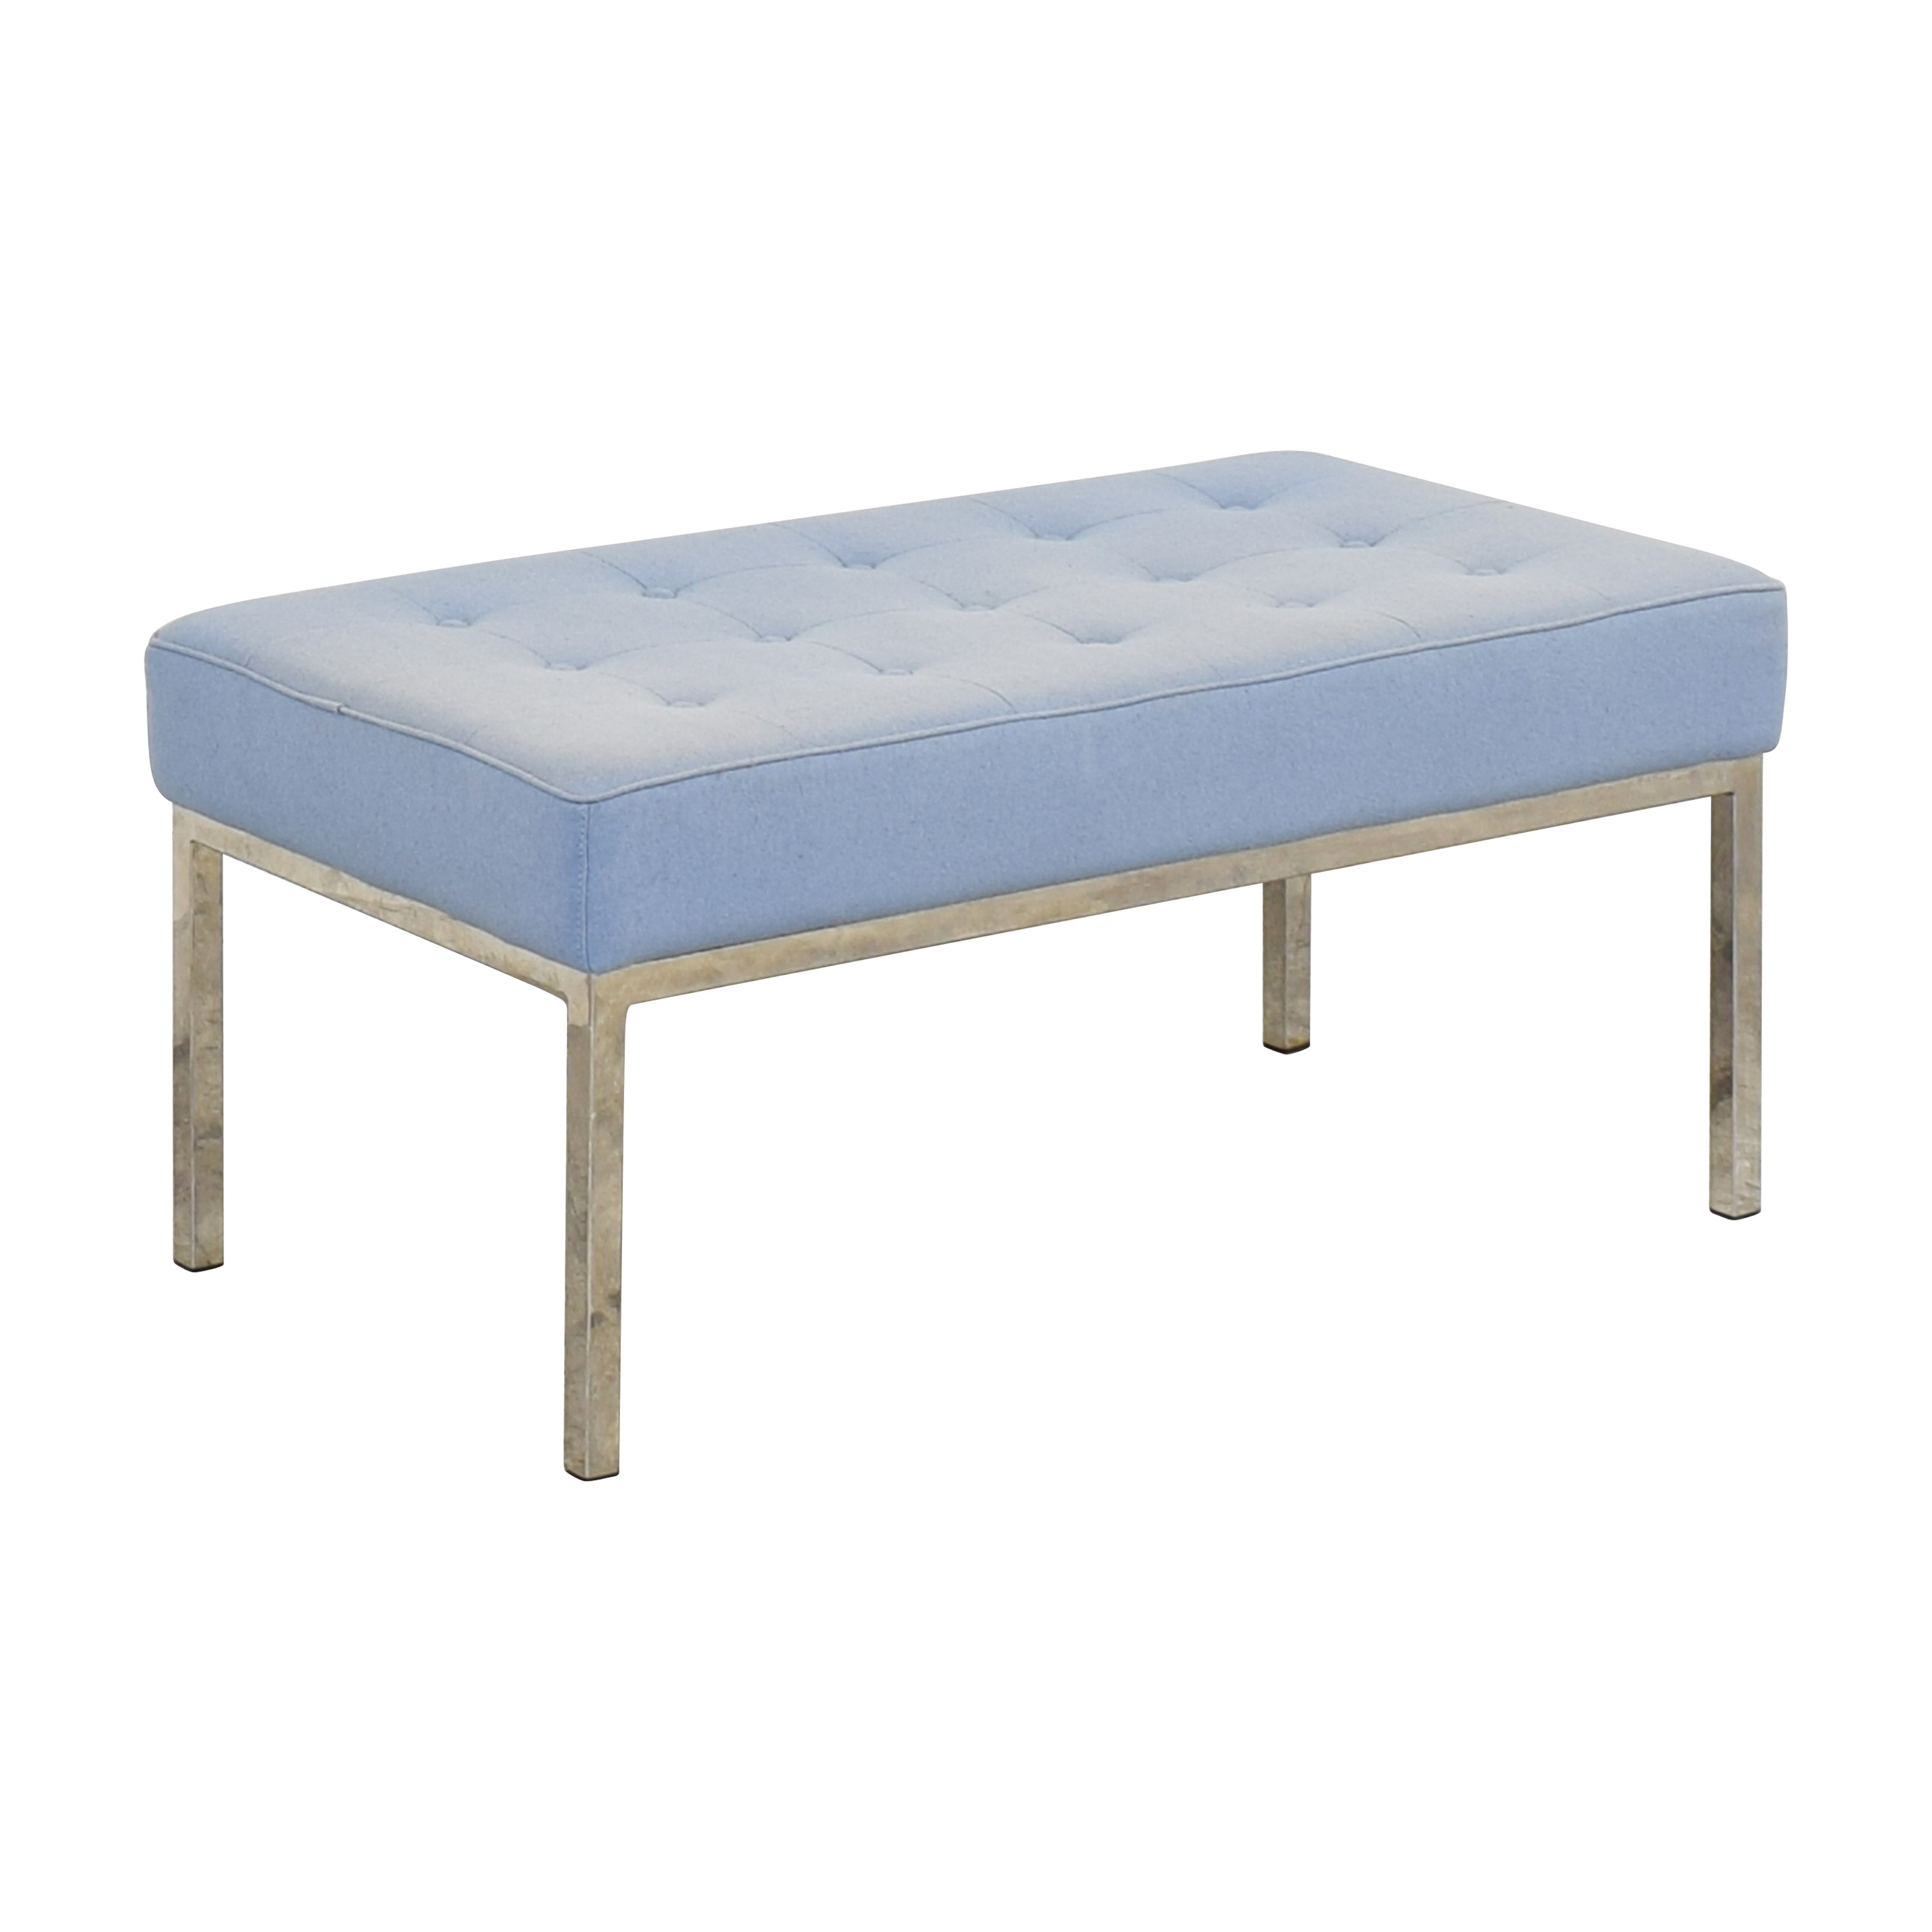 Rove Concepts Rove Concepts Mid Century Tufted Bench second hand